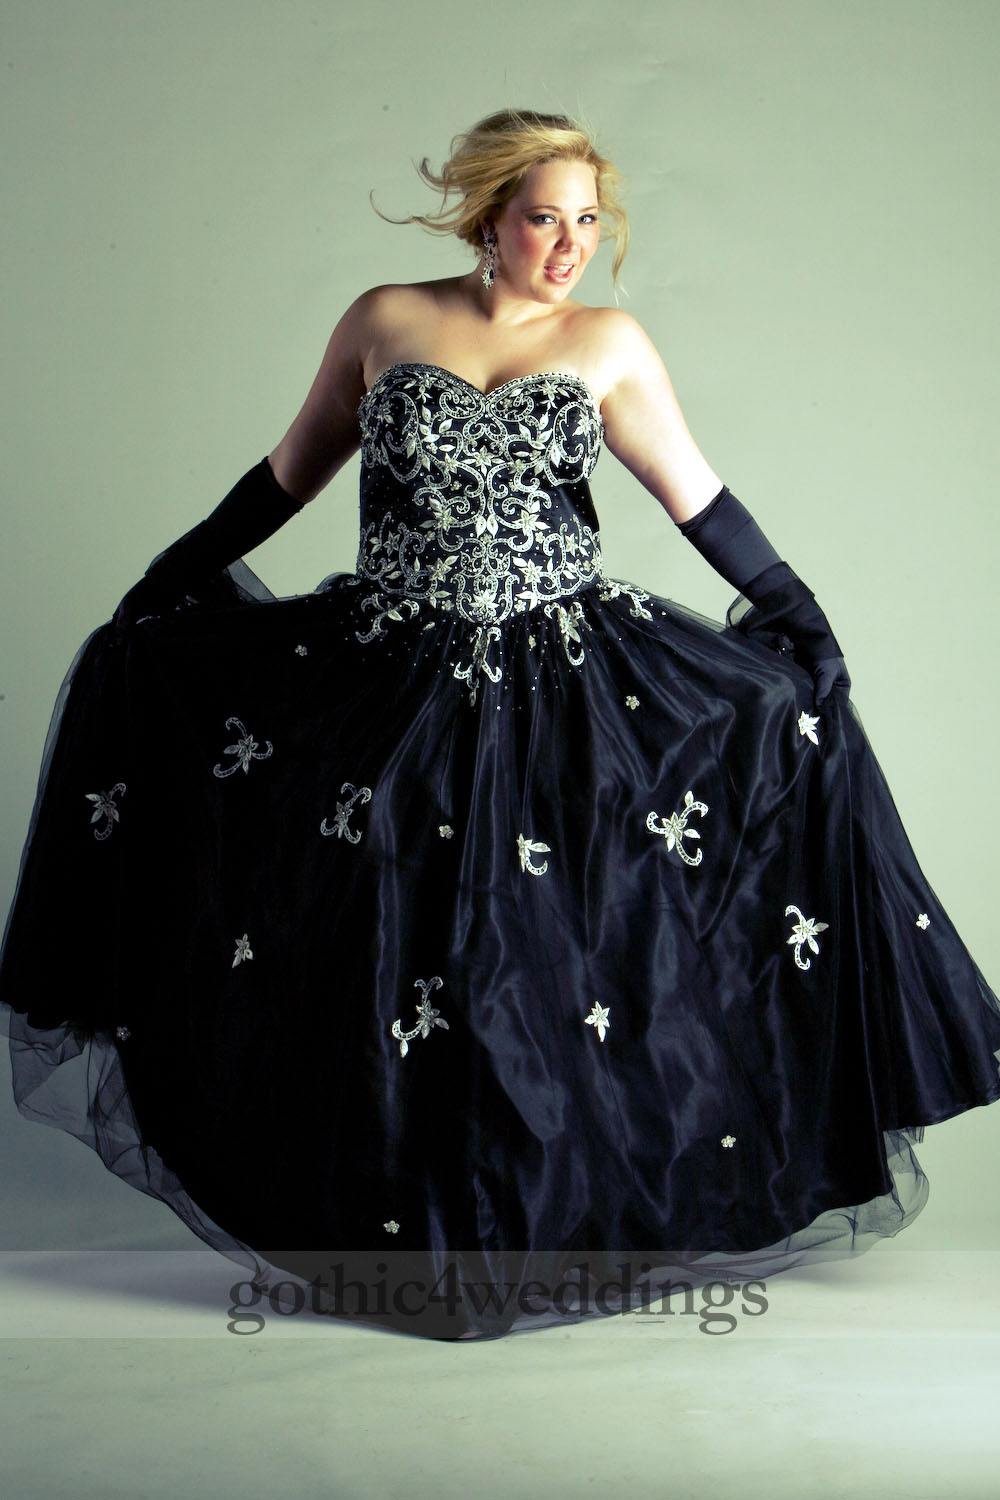 Plus Size Prom Dresses Goth 84